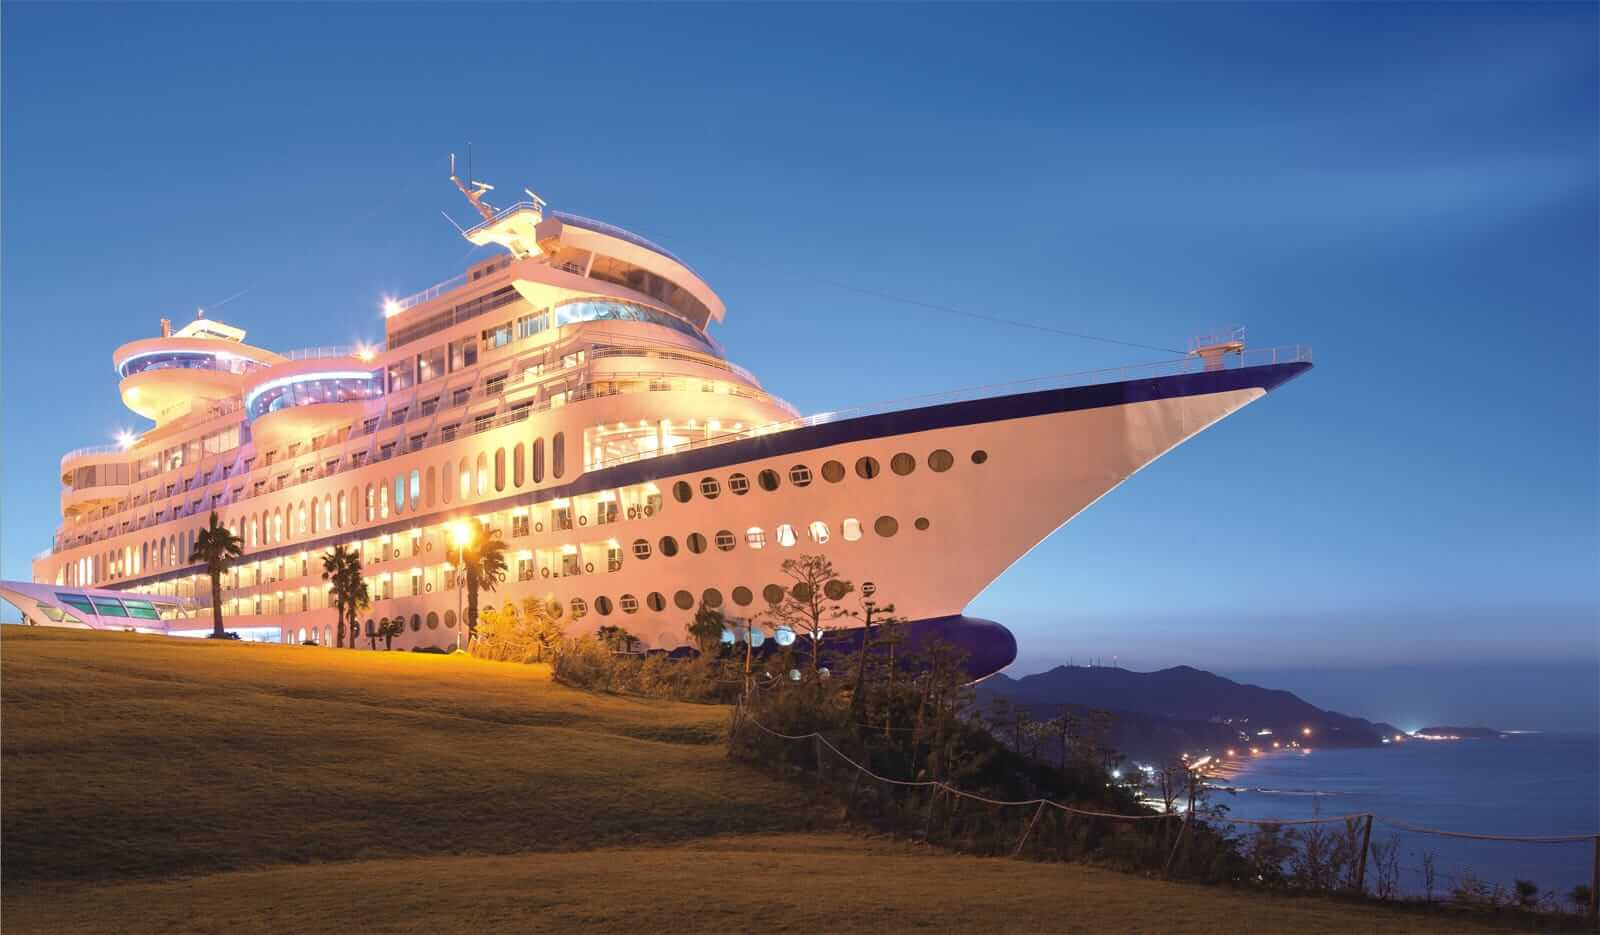 Sun cruise resort, Korea